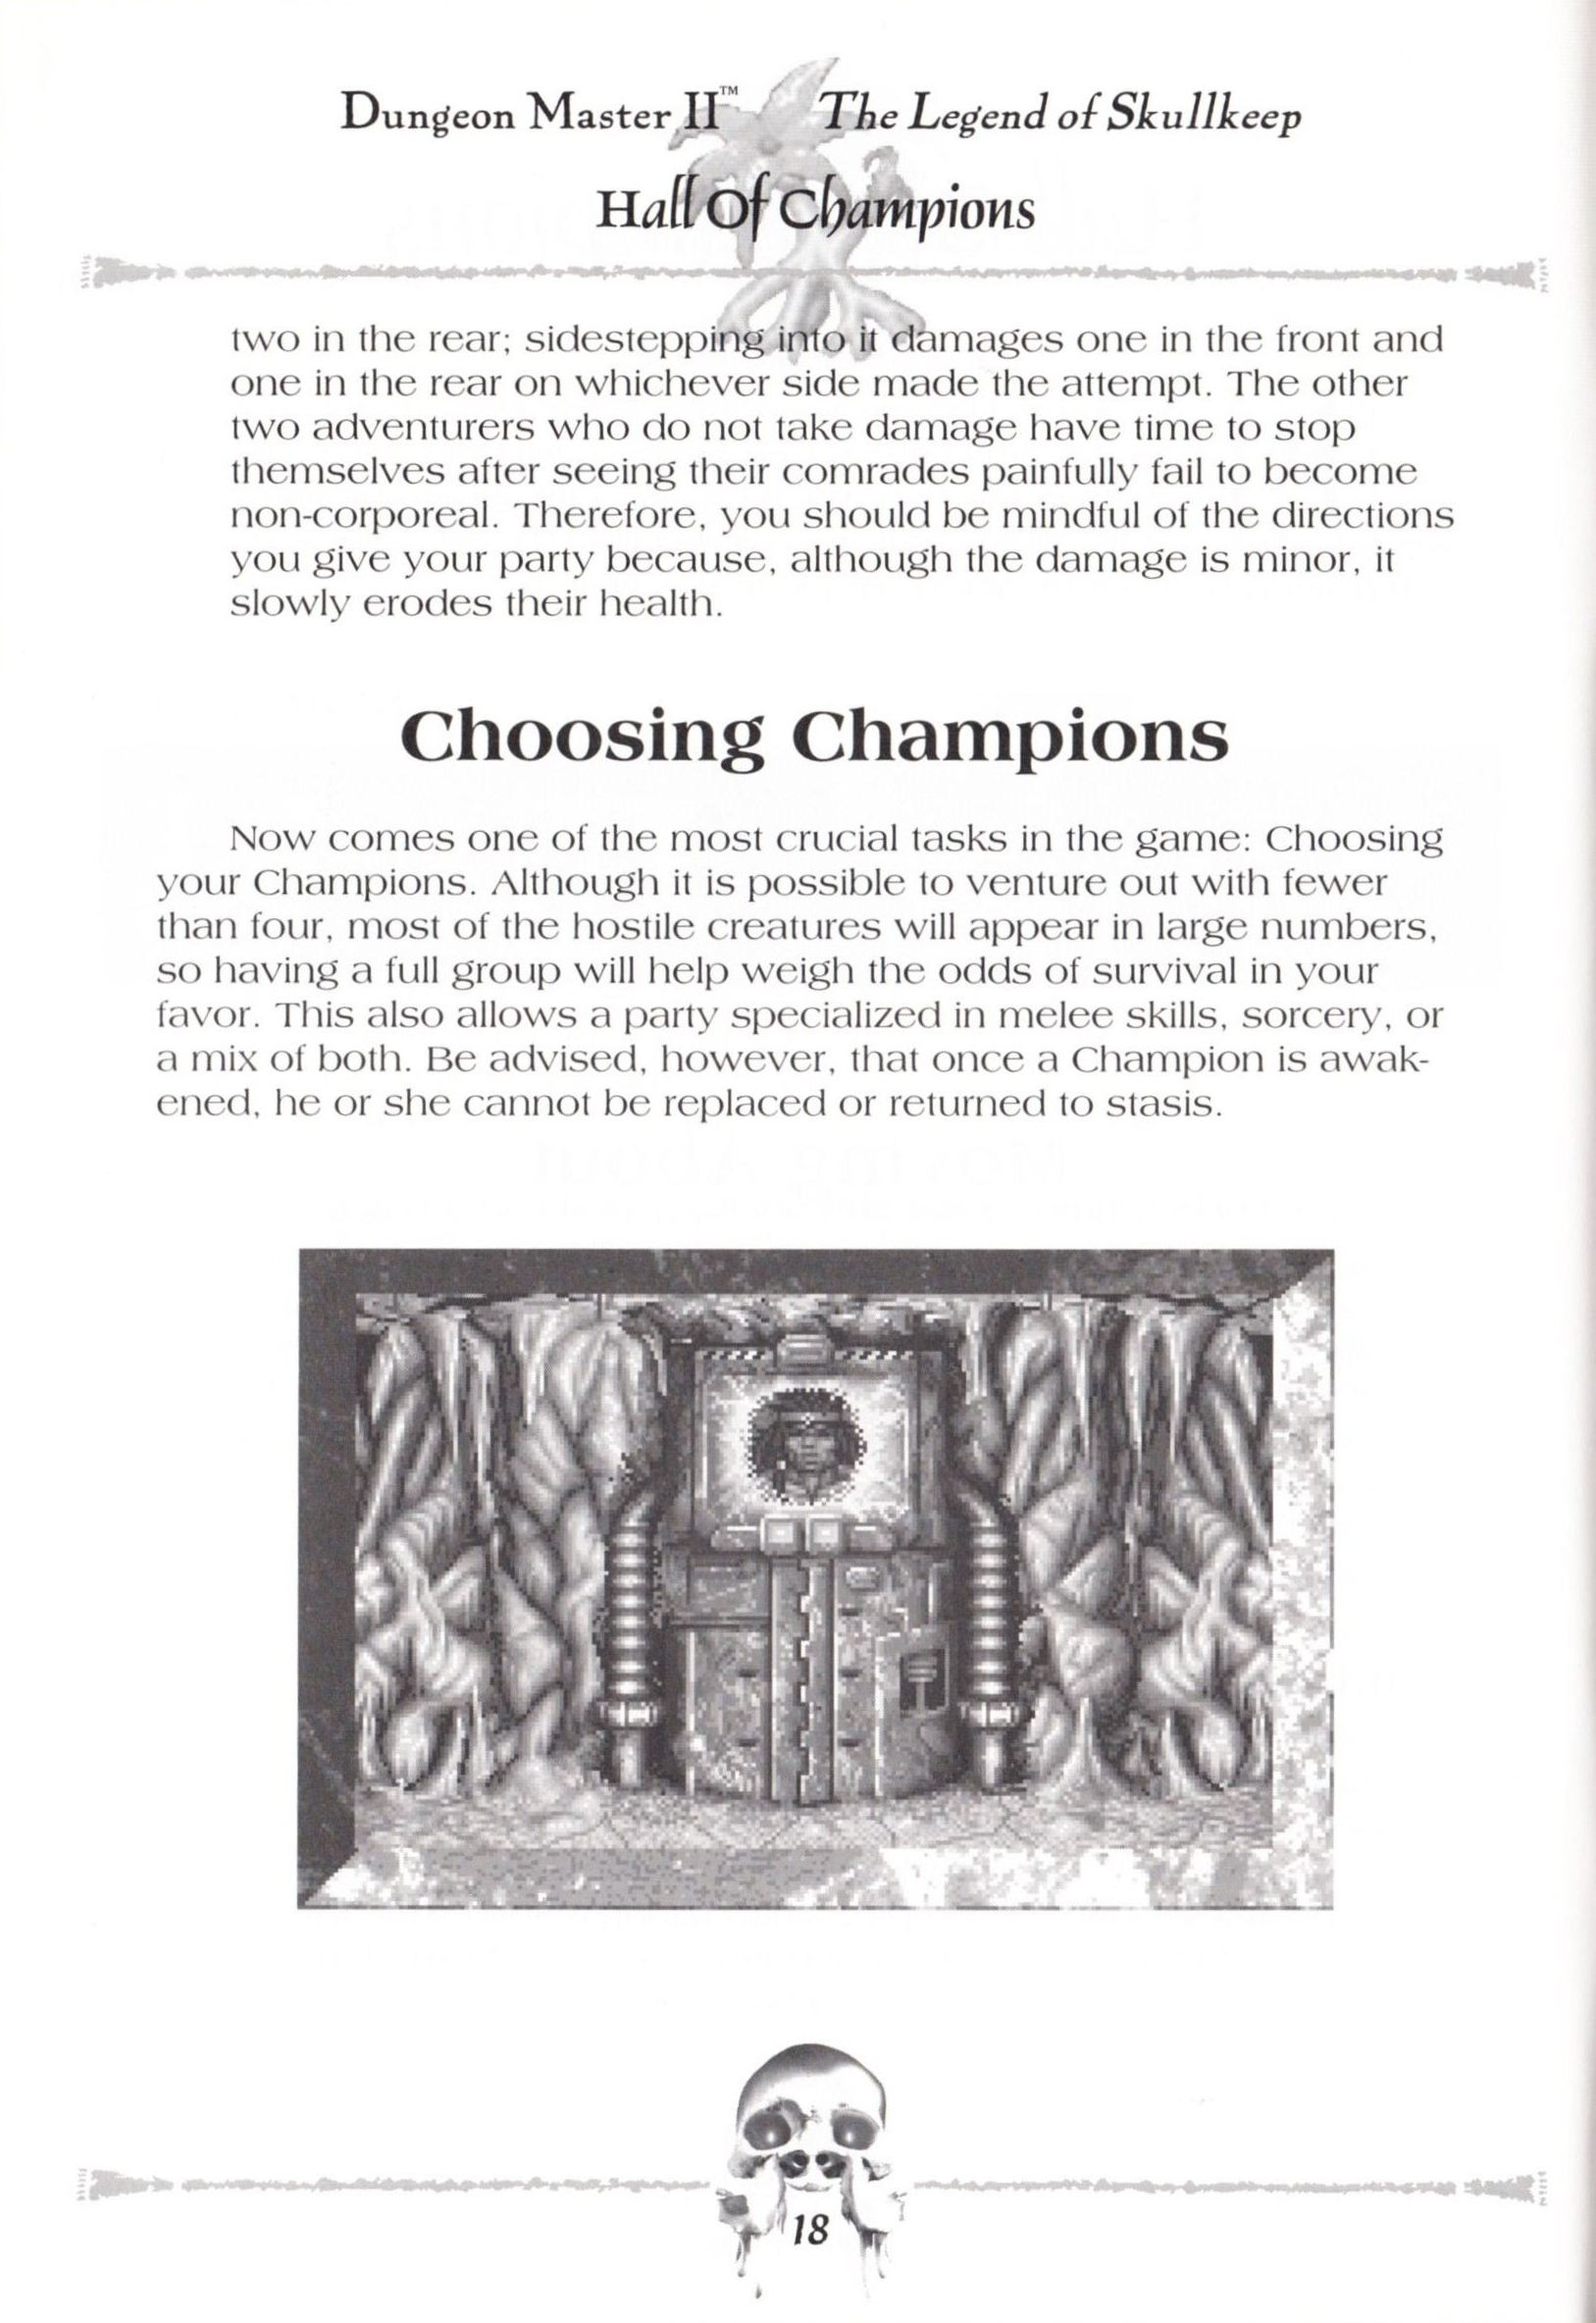 Game - Dungeon Master II - US - Macintosh - Manual - Page 020 - Scan